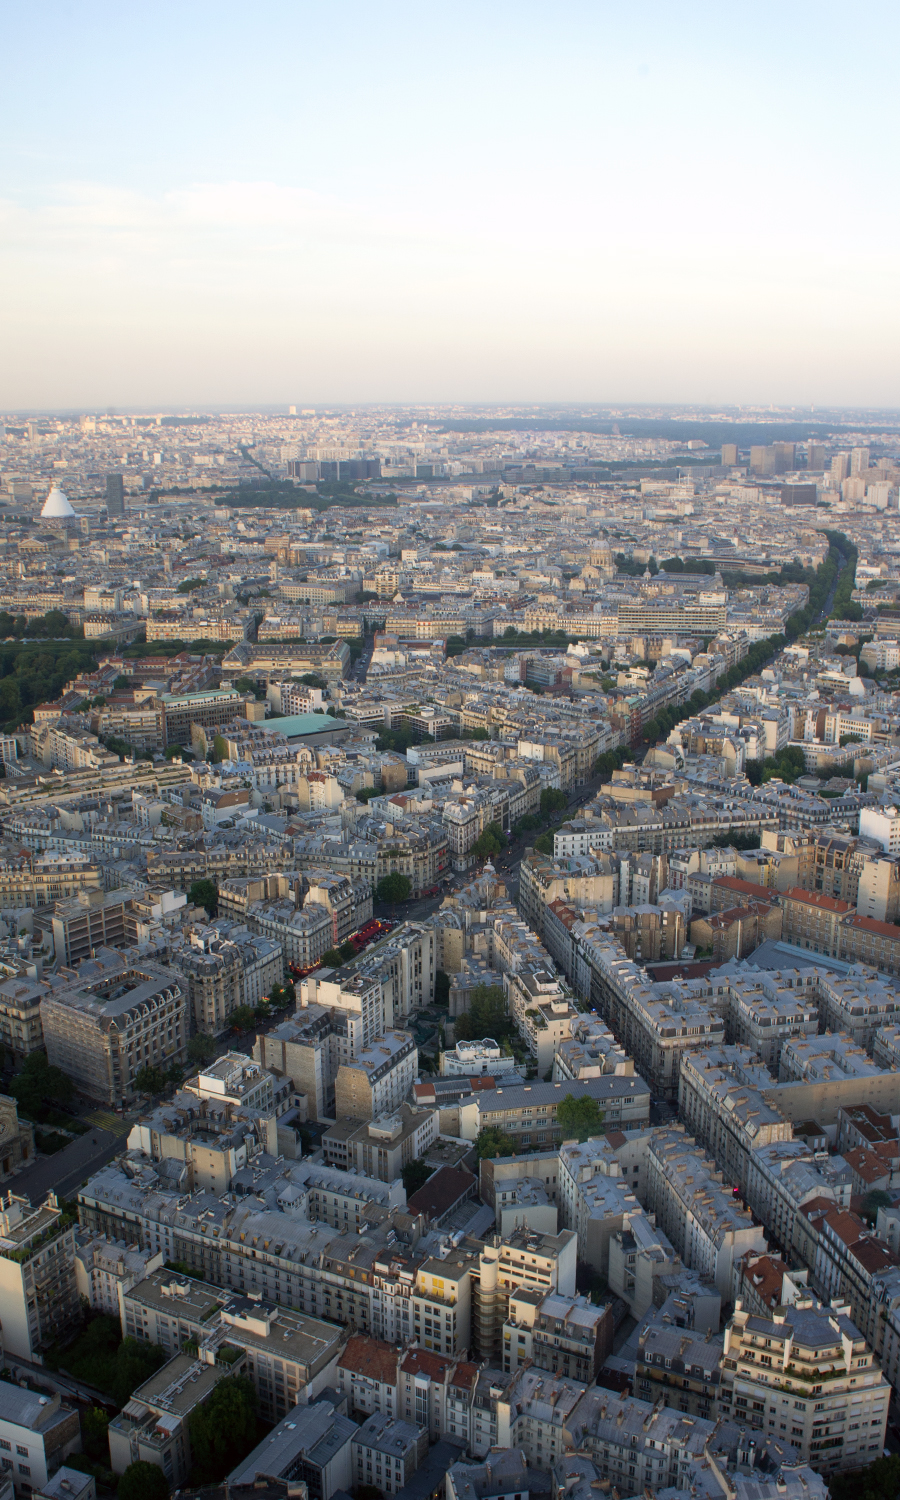 2014-montparnasse-56-tower-paris-france-03